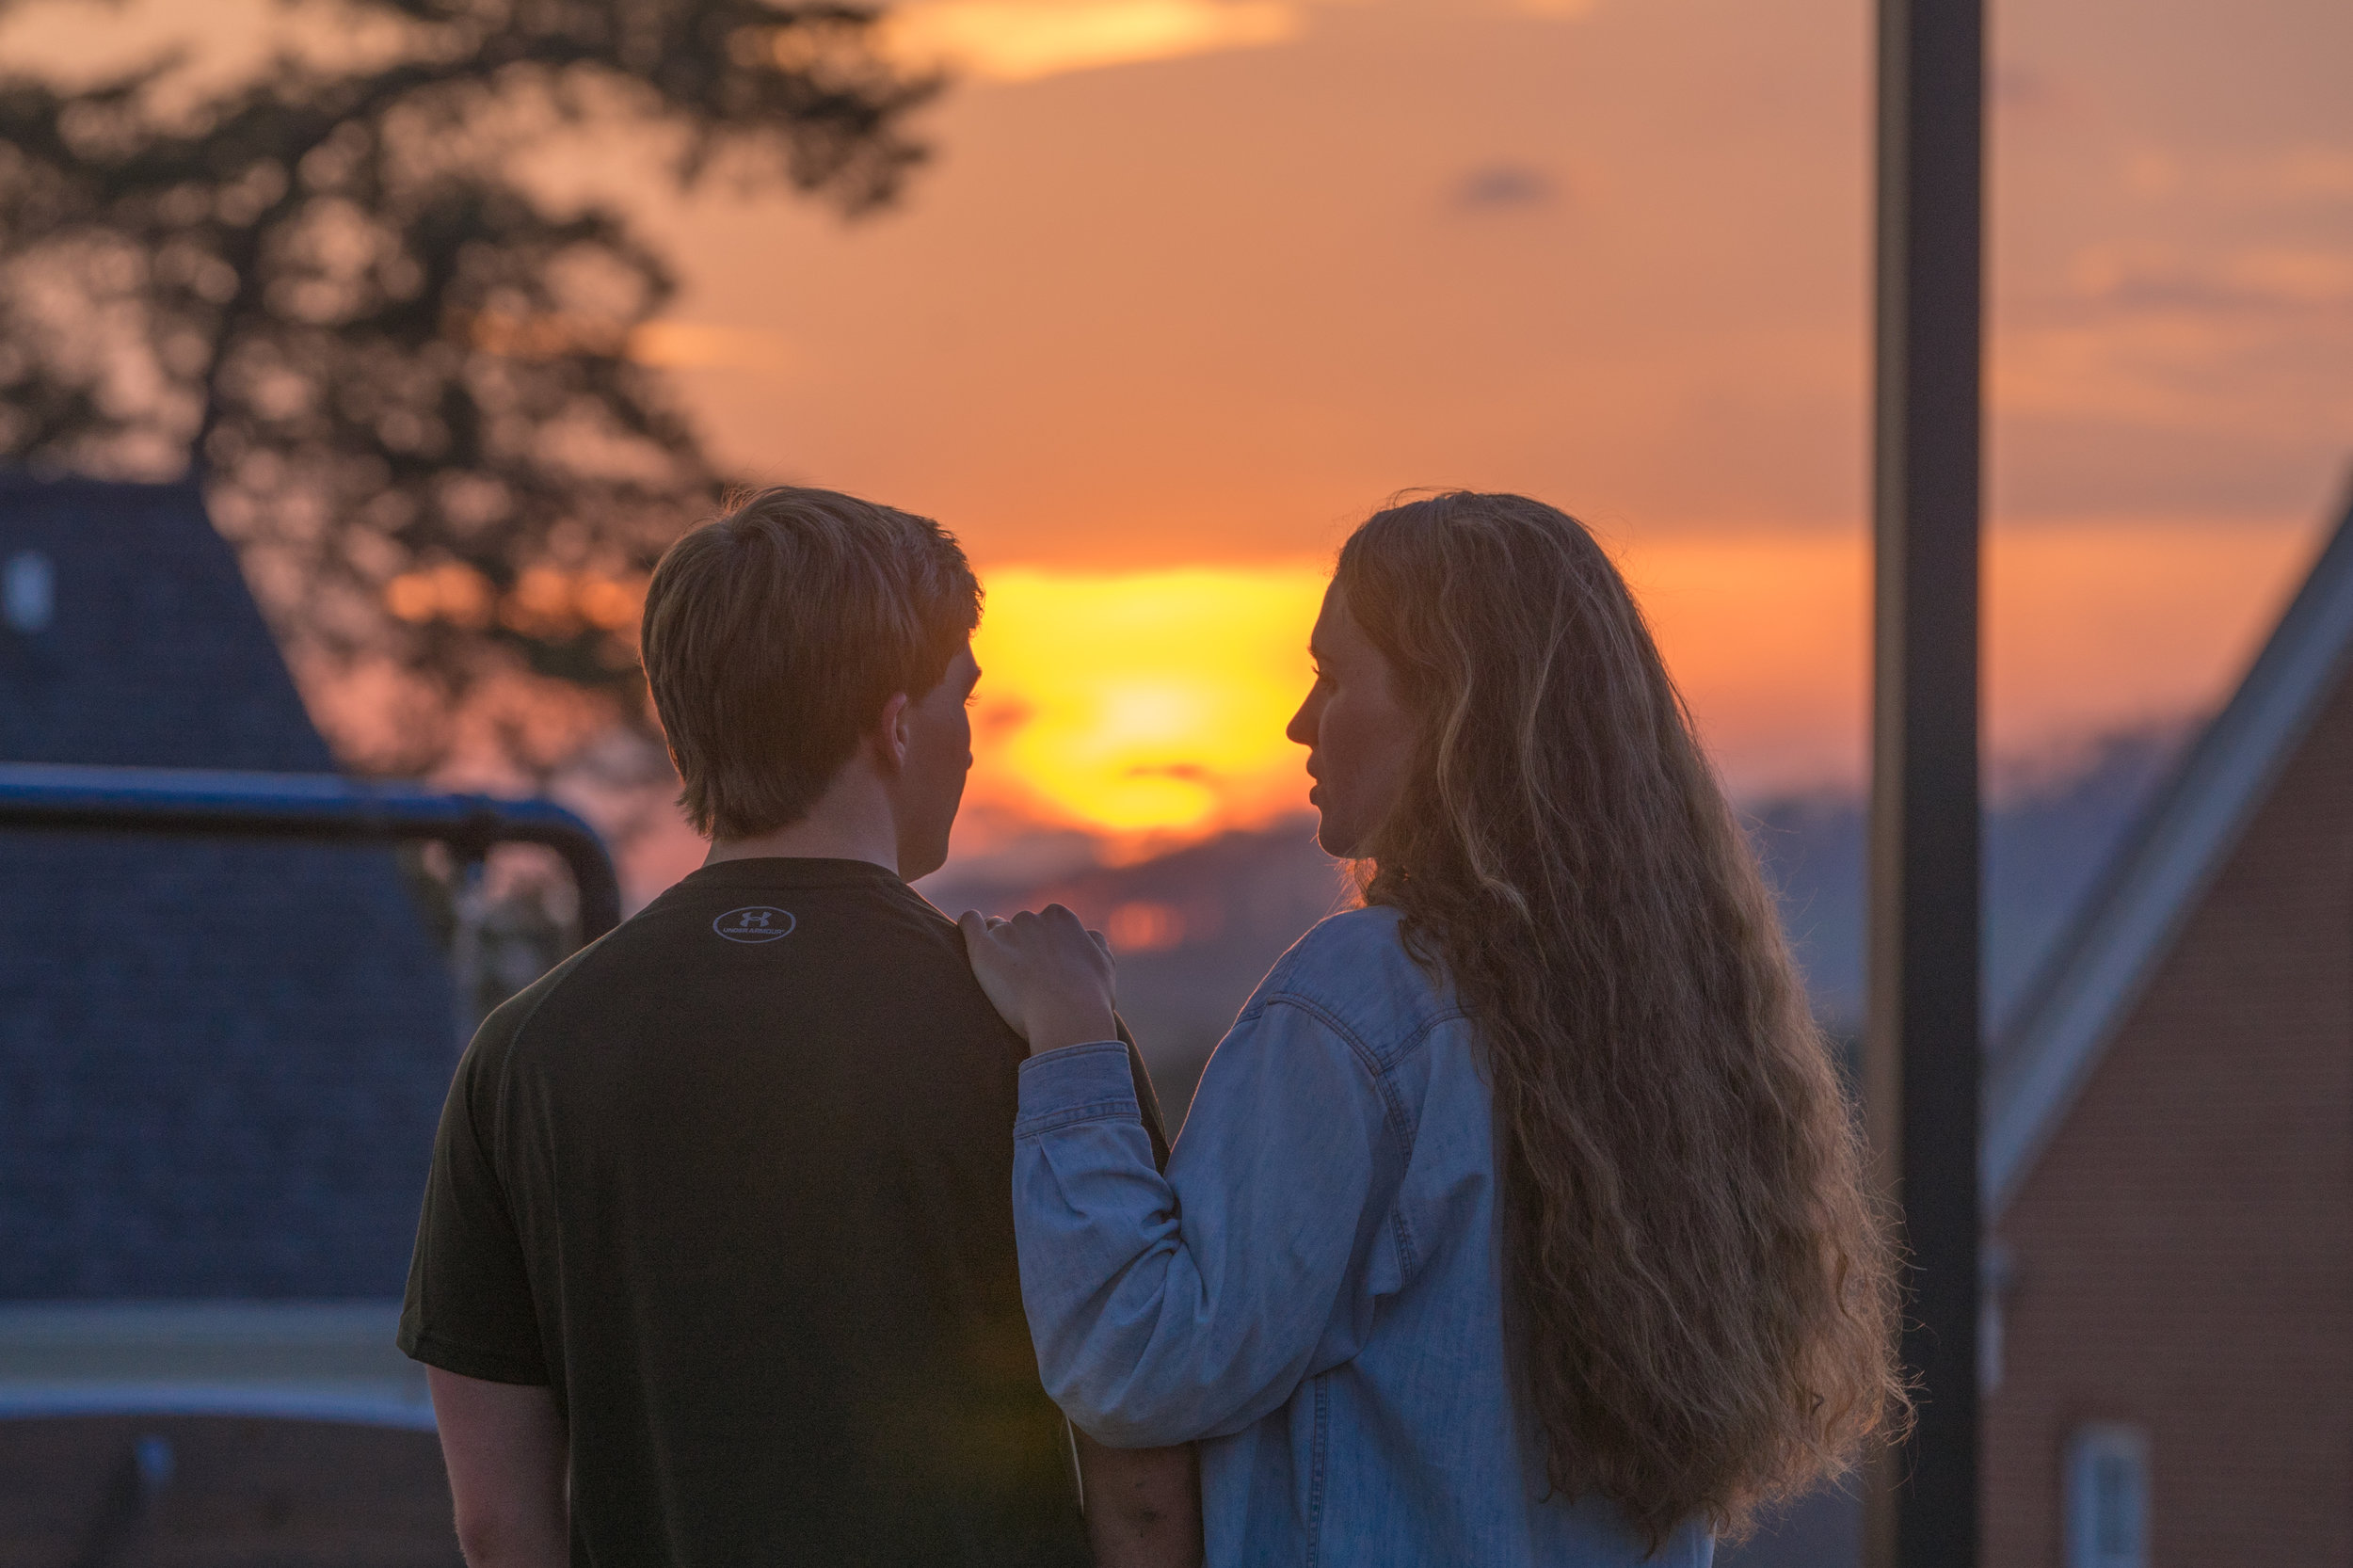 A couple takes in a peaceful moment as the sun sets behind the Blue Ridge mountains.